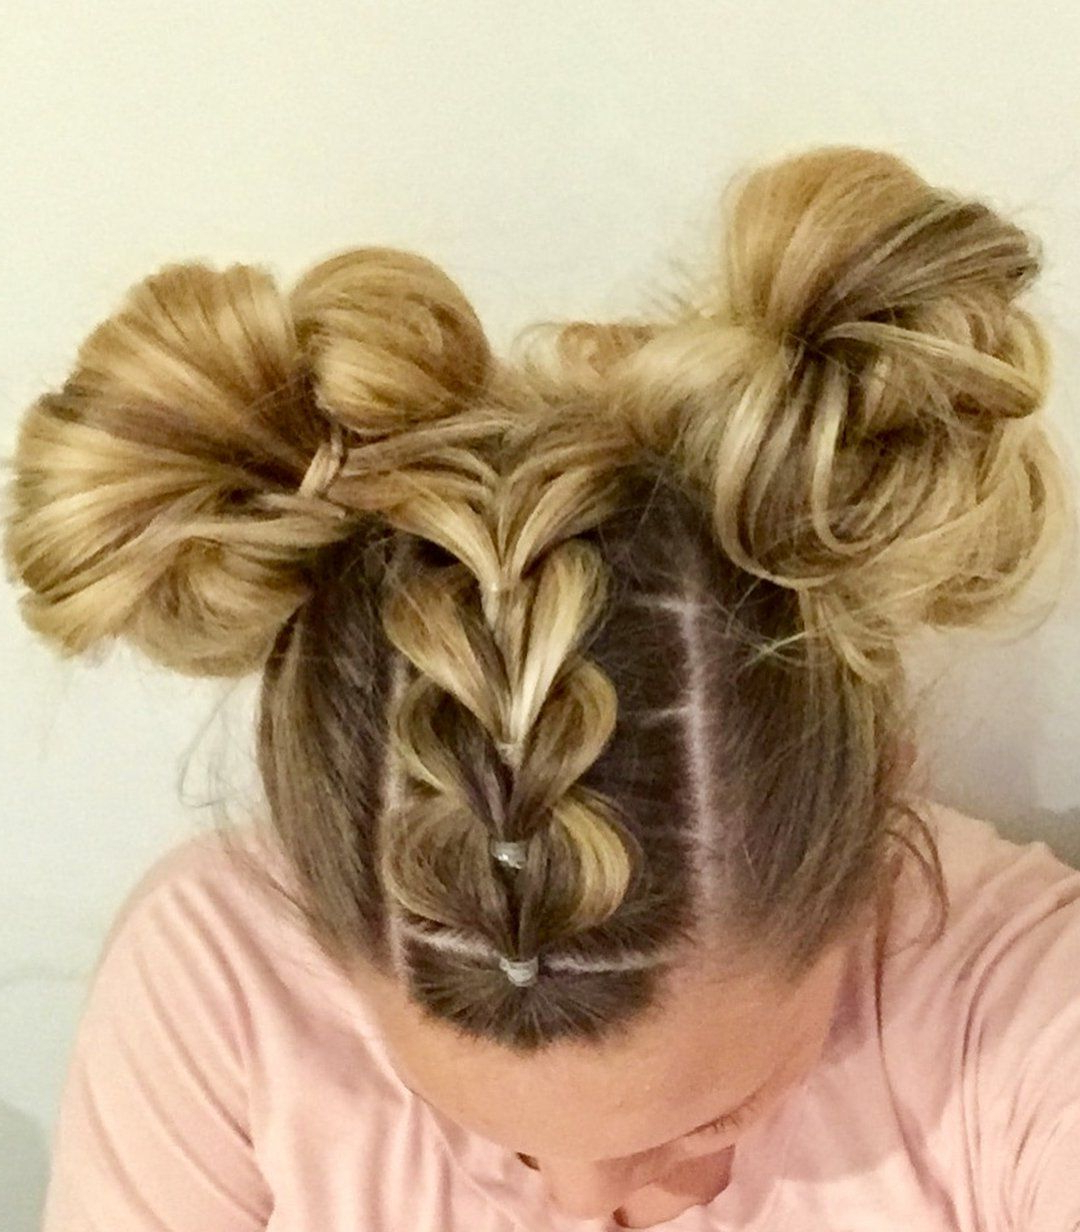 Ponytails Regarding 2019 Pull Through Ponytail Updo Hairstyles (Gallery 5 of 20)